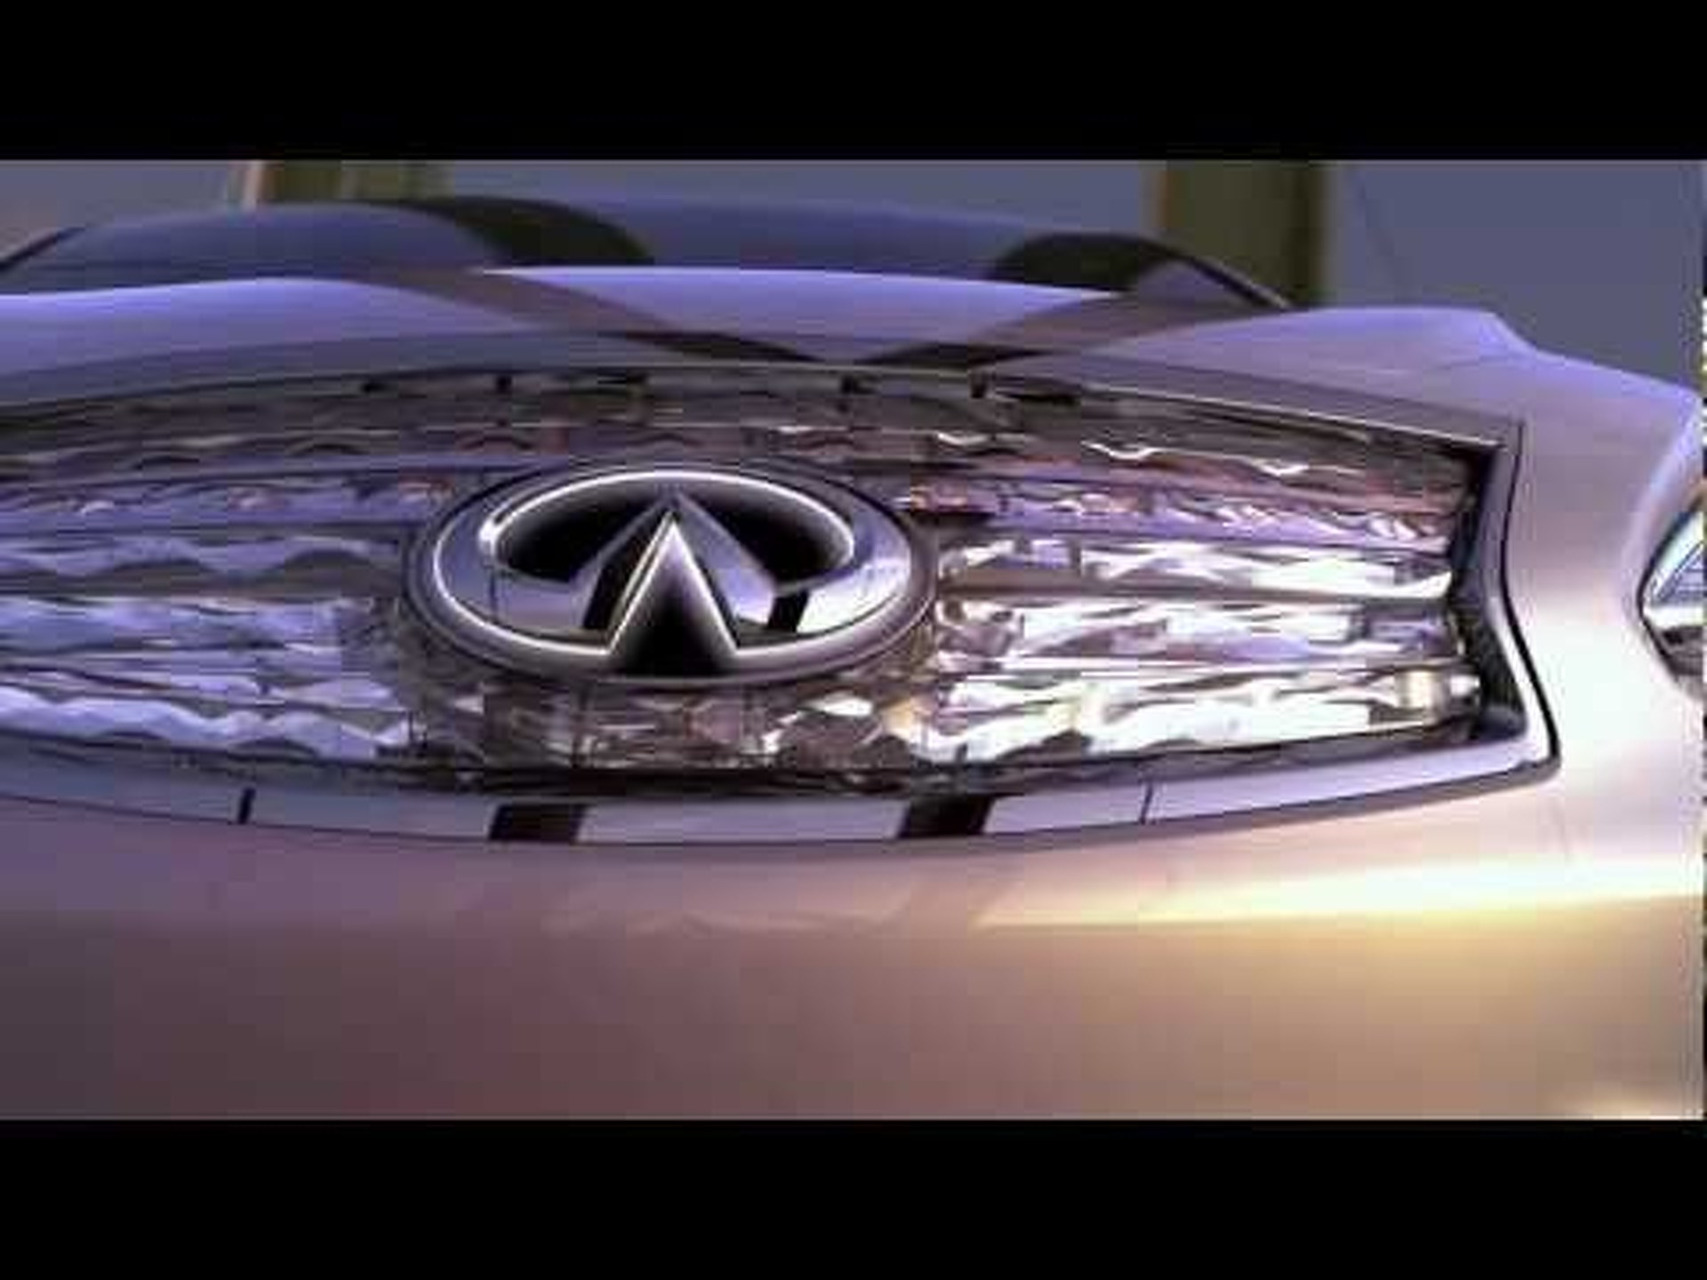 2012 Infiniti LE Concept Running Footage